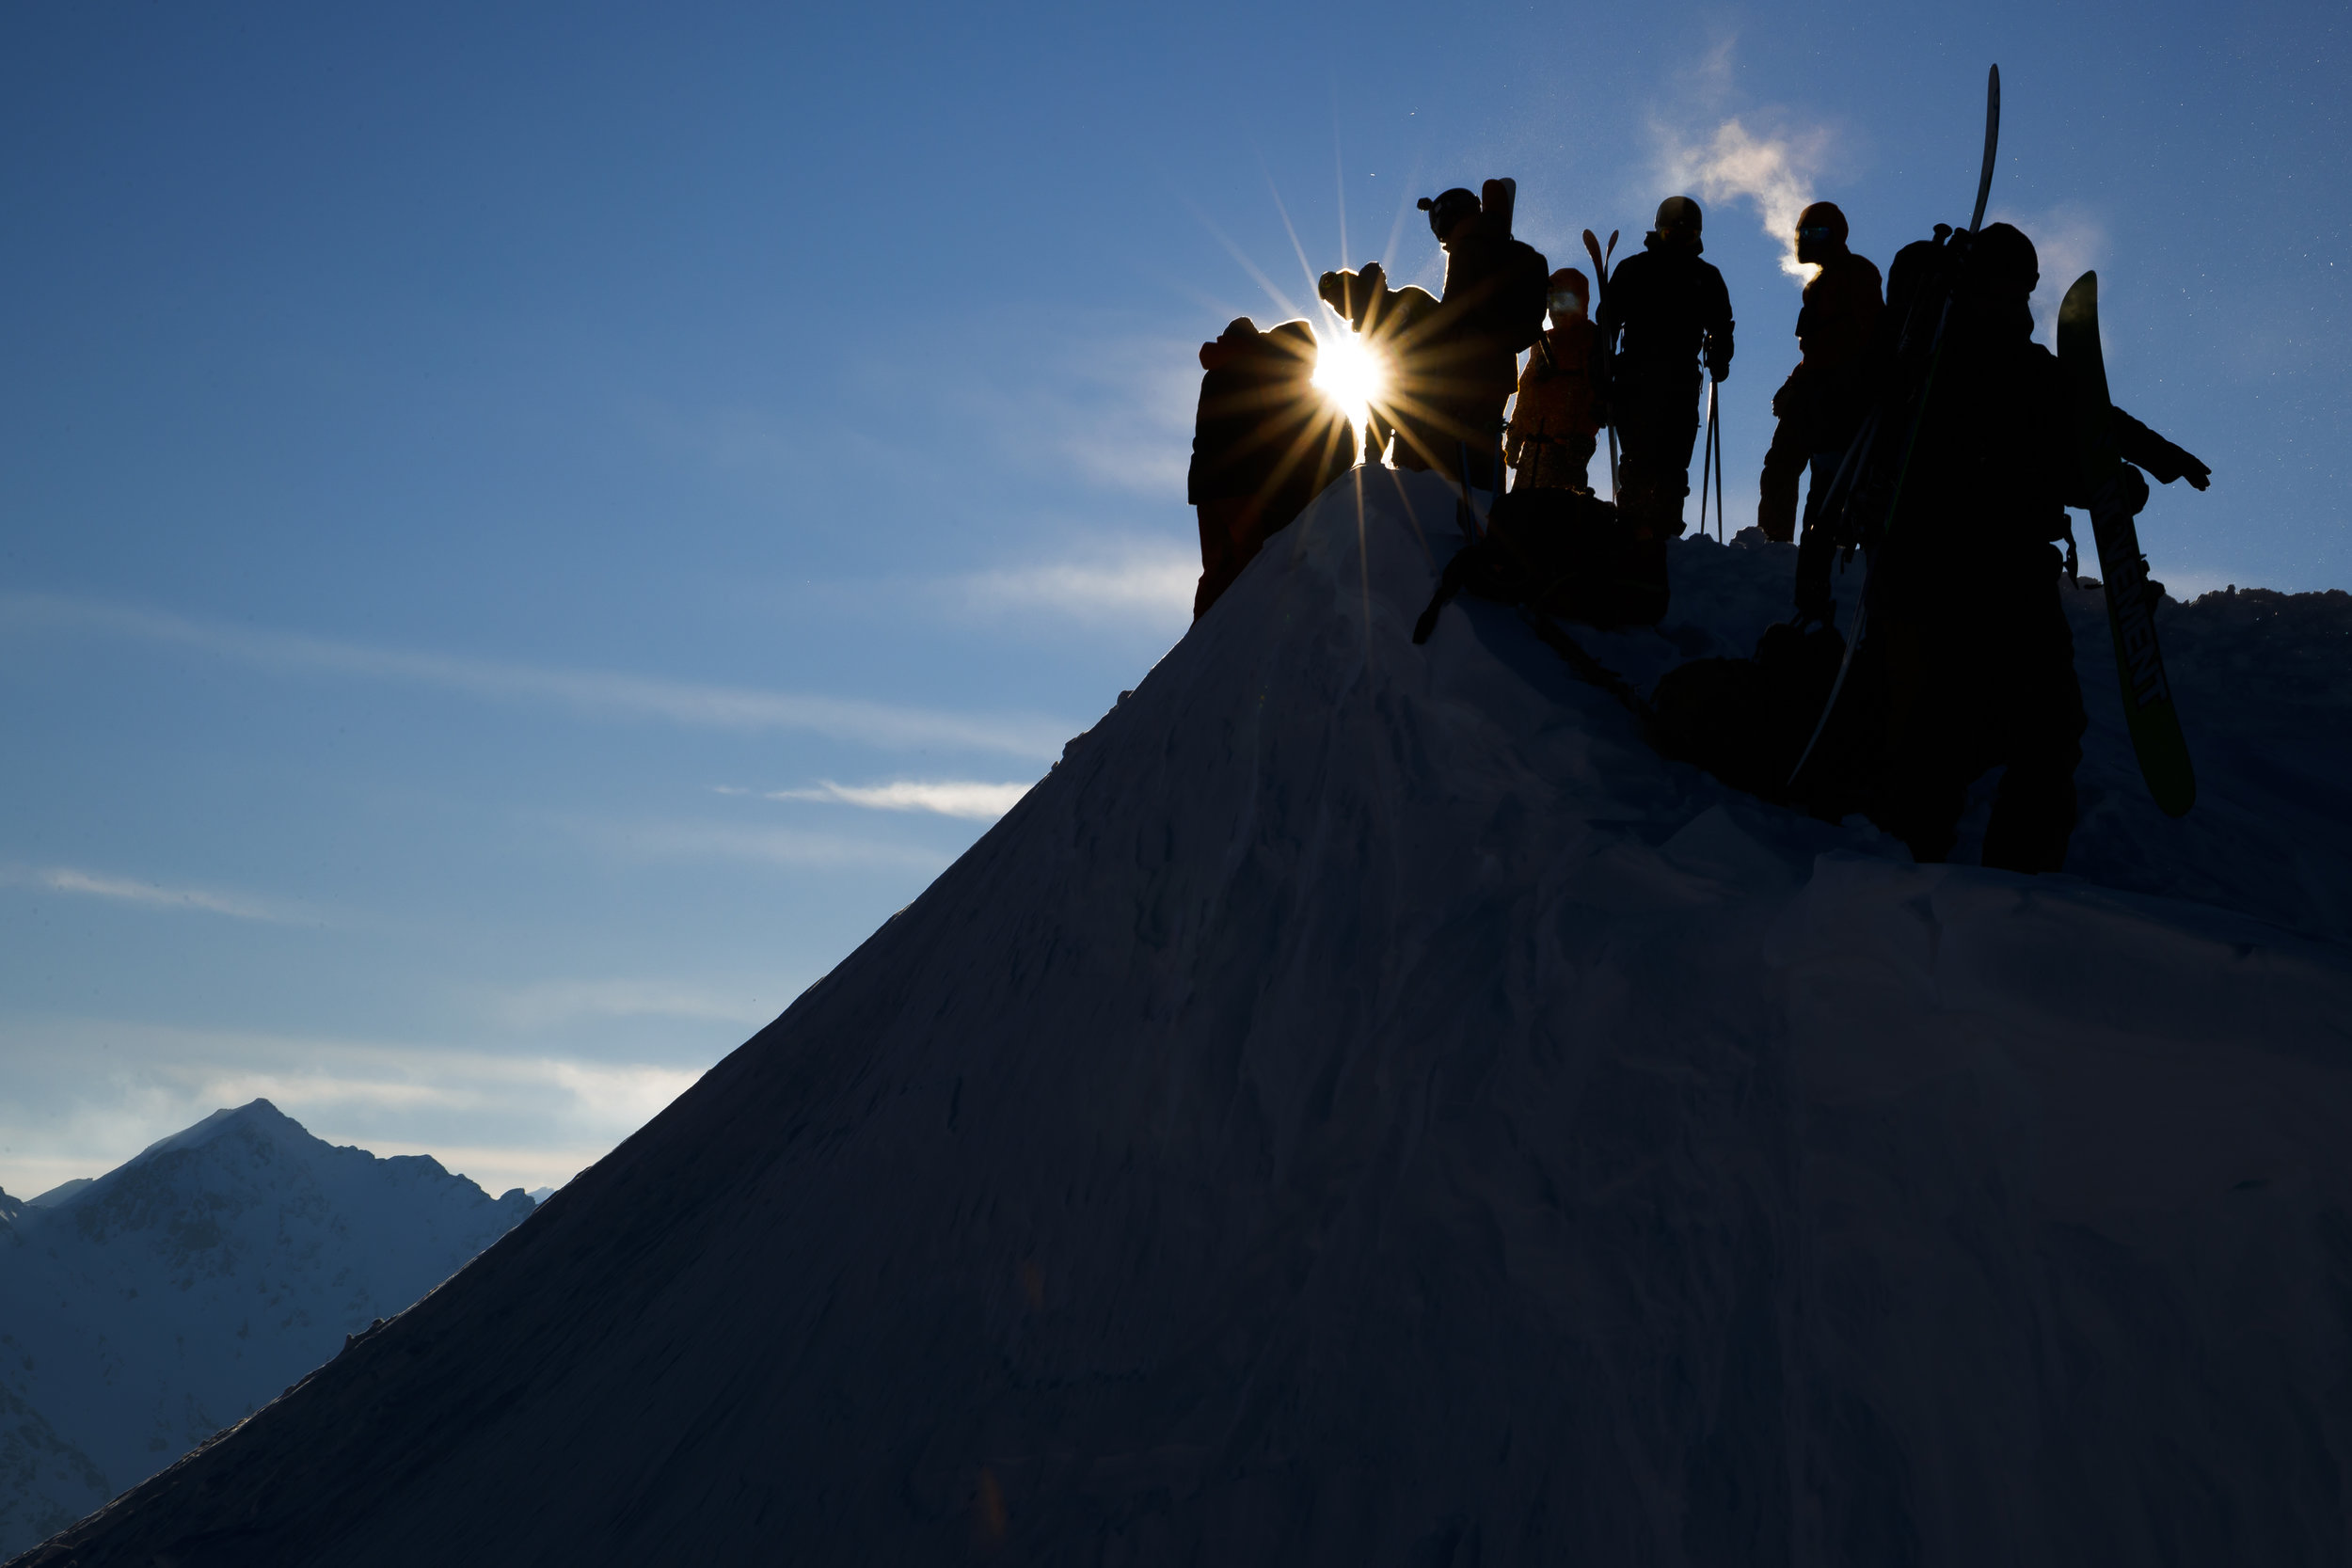 Technical staff prepare the start area prior to the Nendaz Freeride ski and snowboard competition, a Freeride World Tour Qualifier (FWQ) event, on the Mont Gond in Nendaz, Switzerland, Wednesday March 21, 2018. (KEYSTONE/Valentin Flauraud)